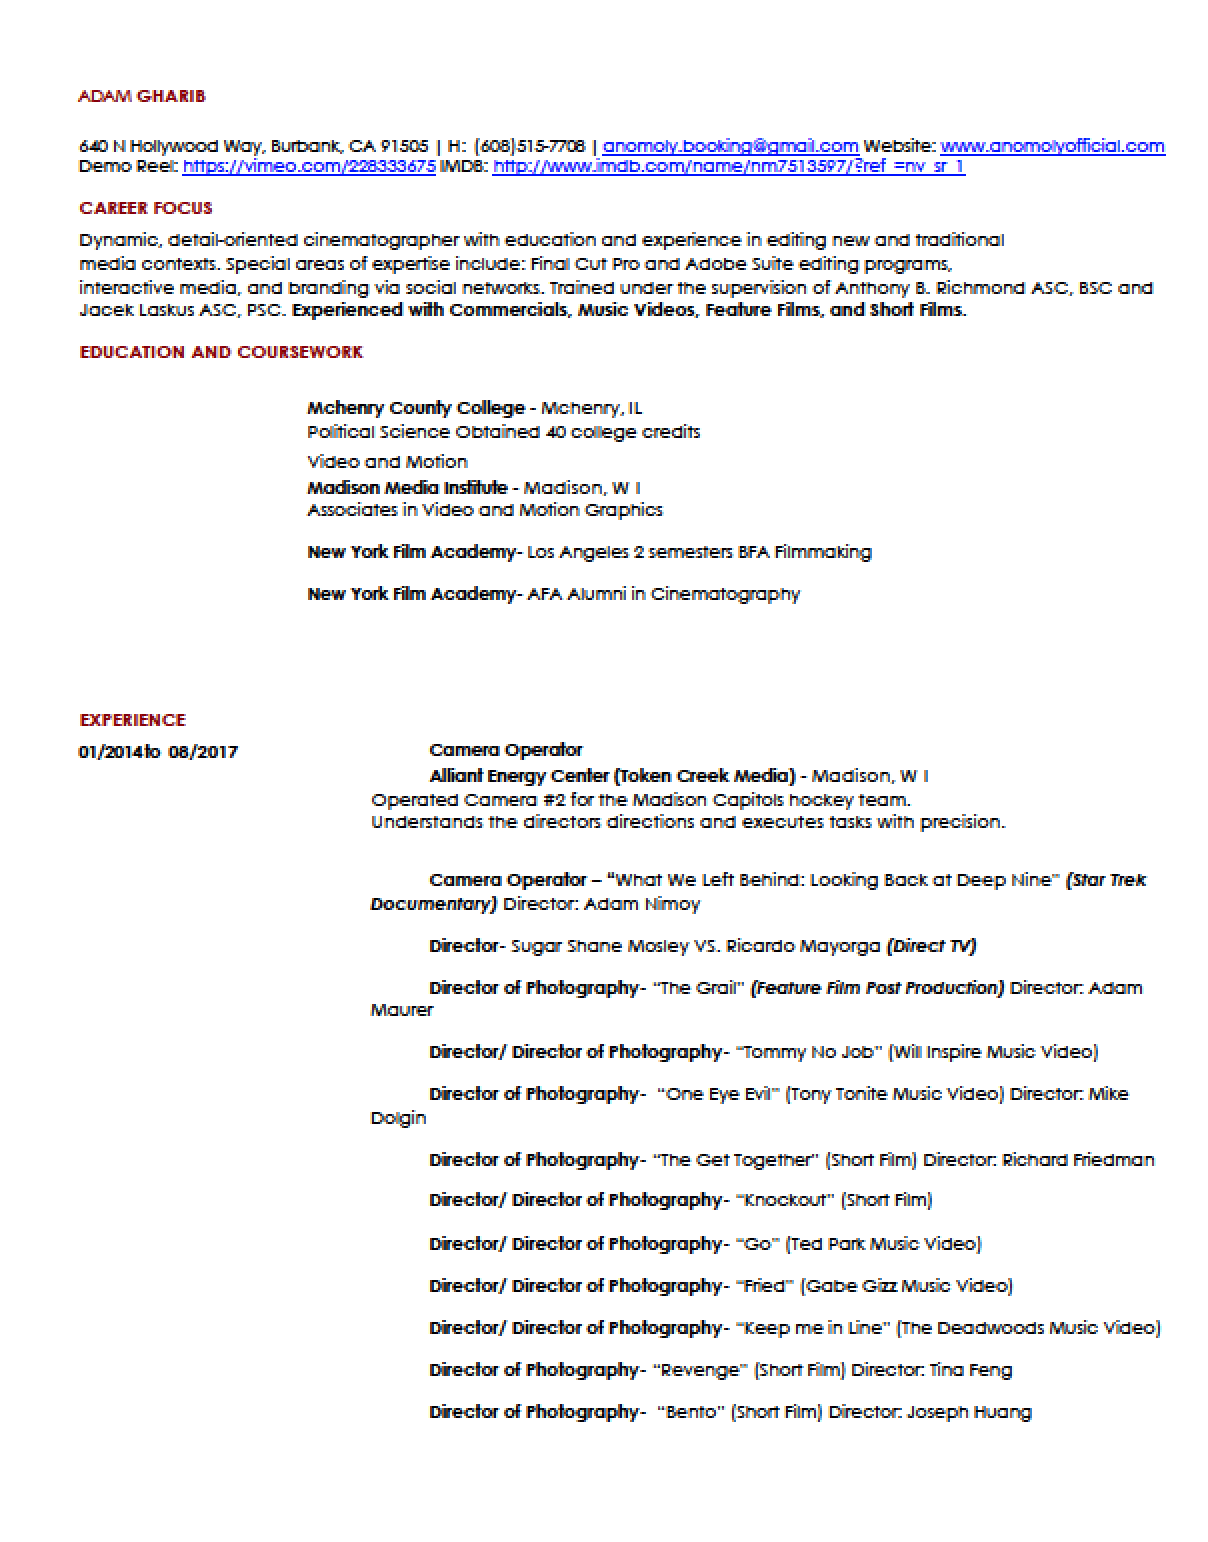 Imdb Resume Resume Anomoly Official